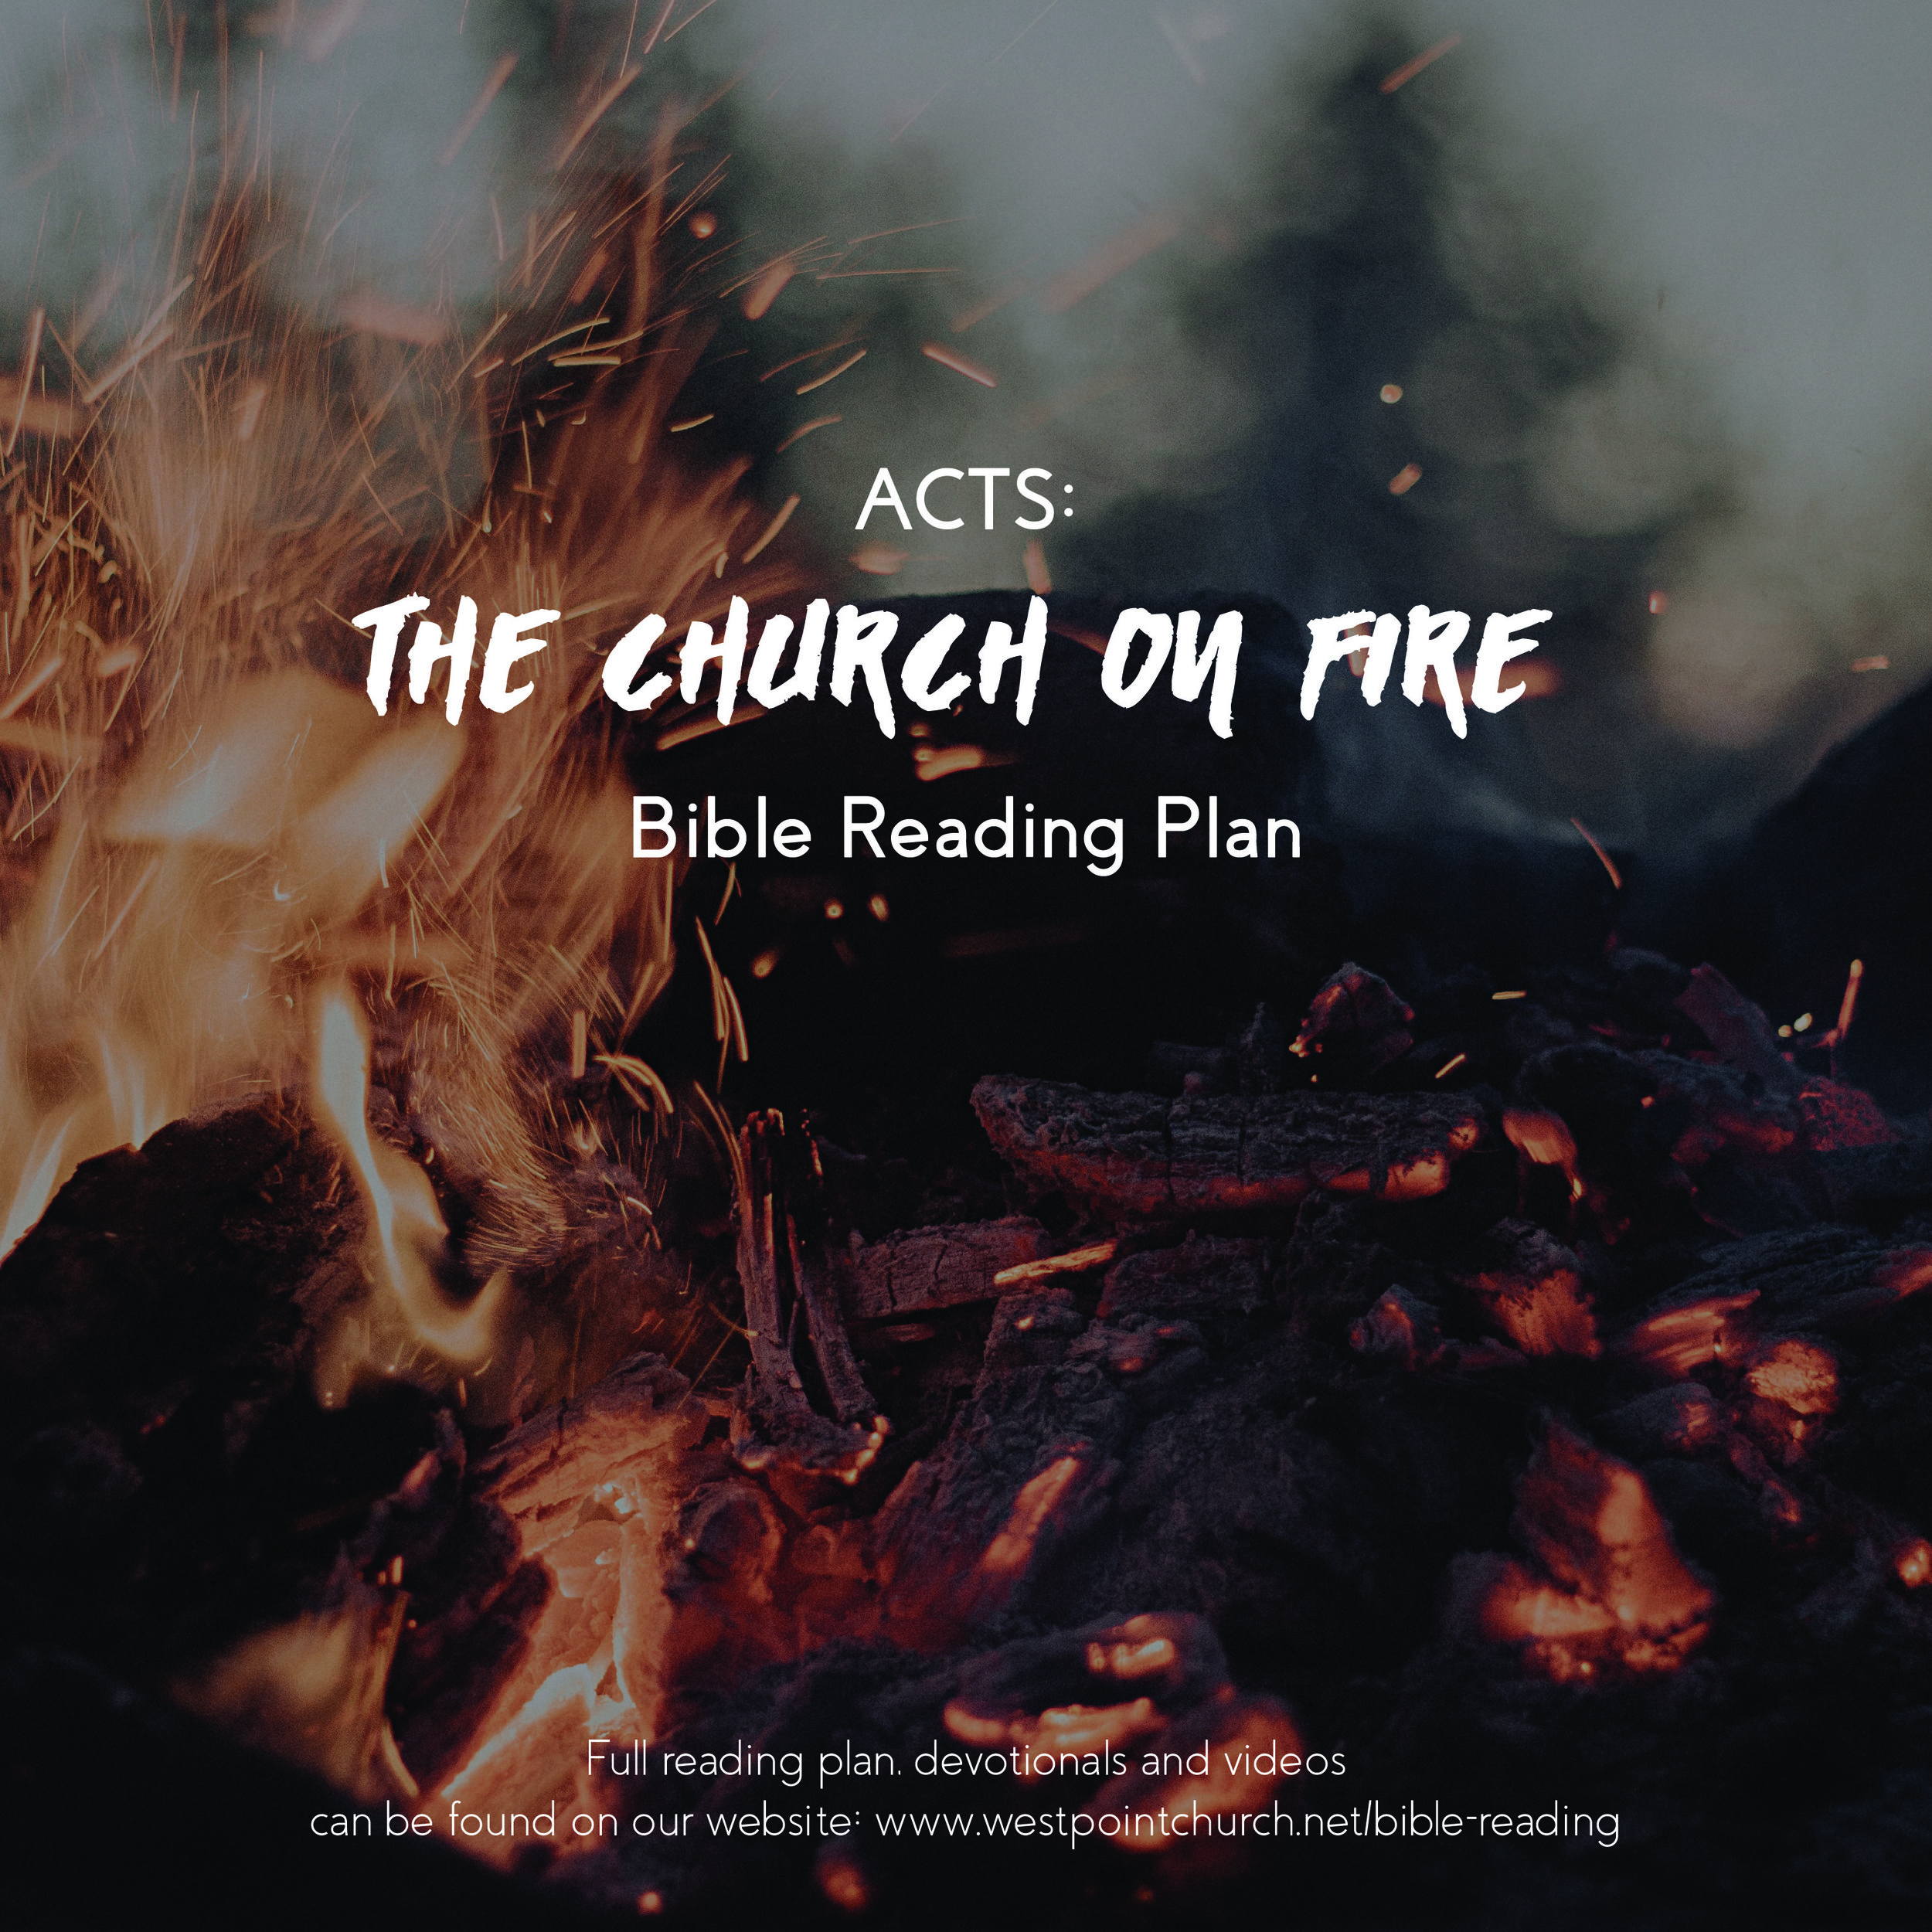 This plan will guide you in reading the Book of Acts and give you opportunity to hear what God is speaking to you personally. We are looking forward to reading this together with our church.